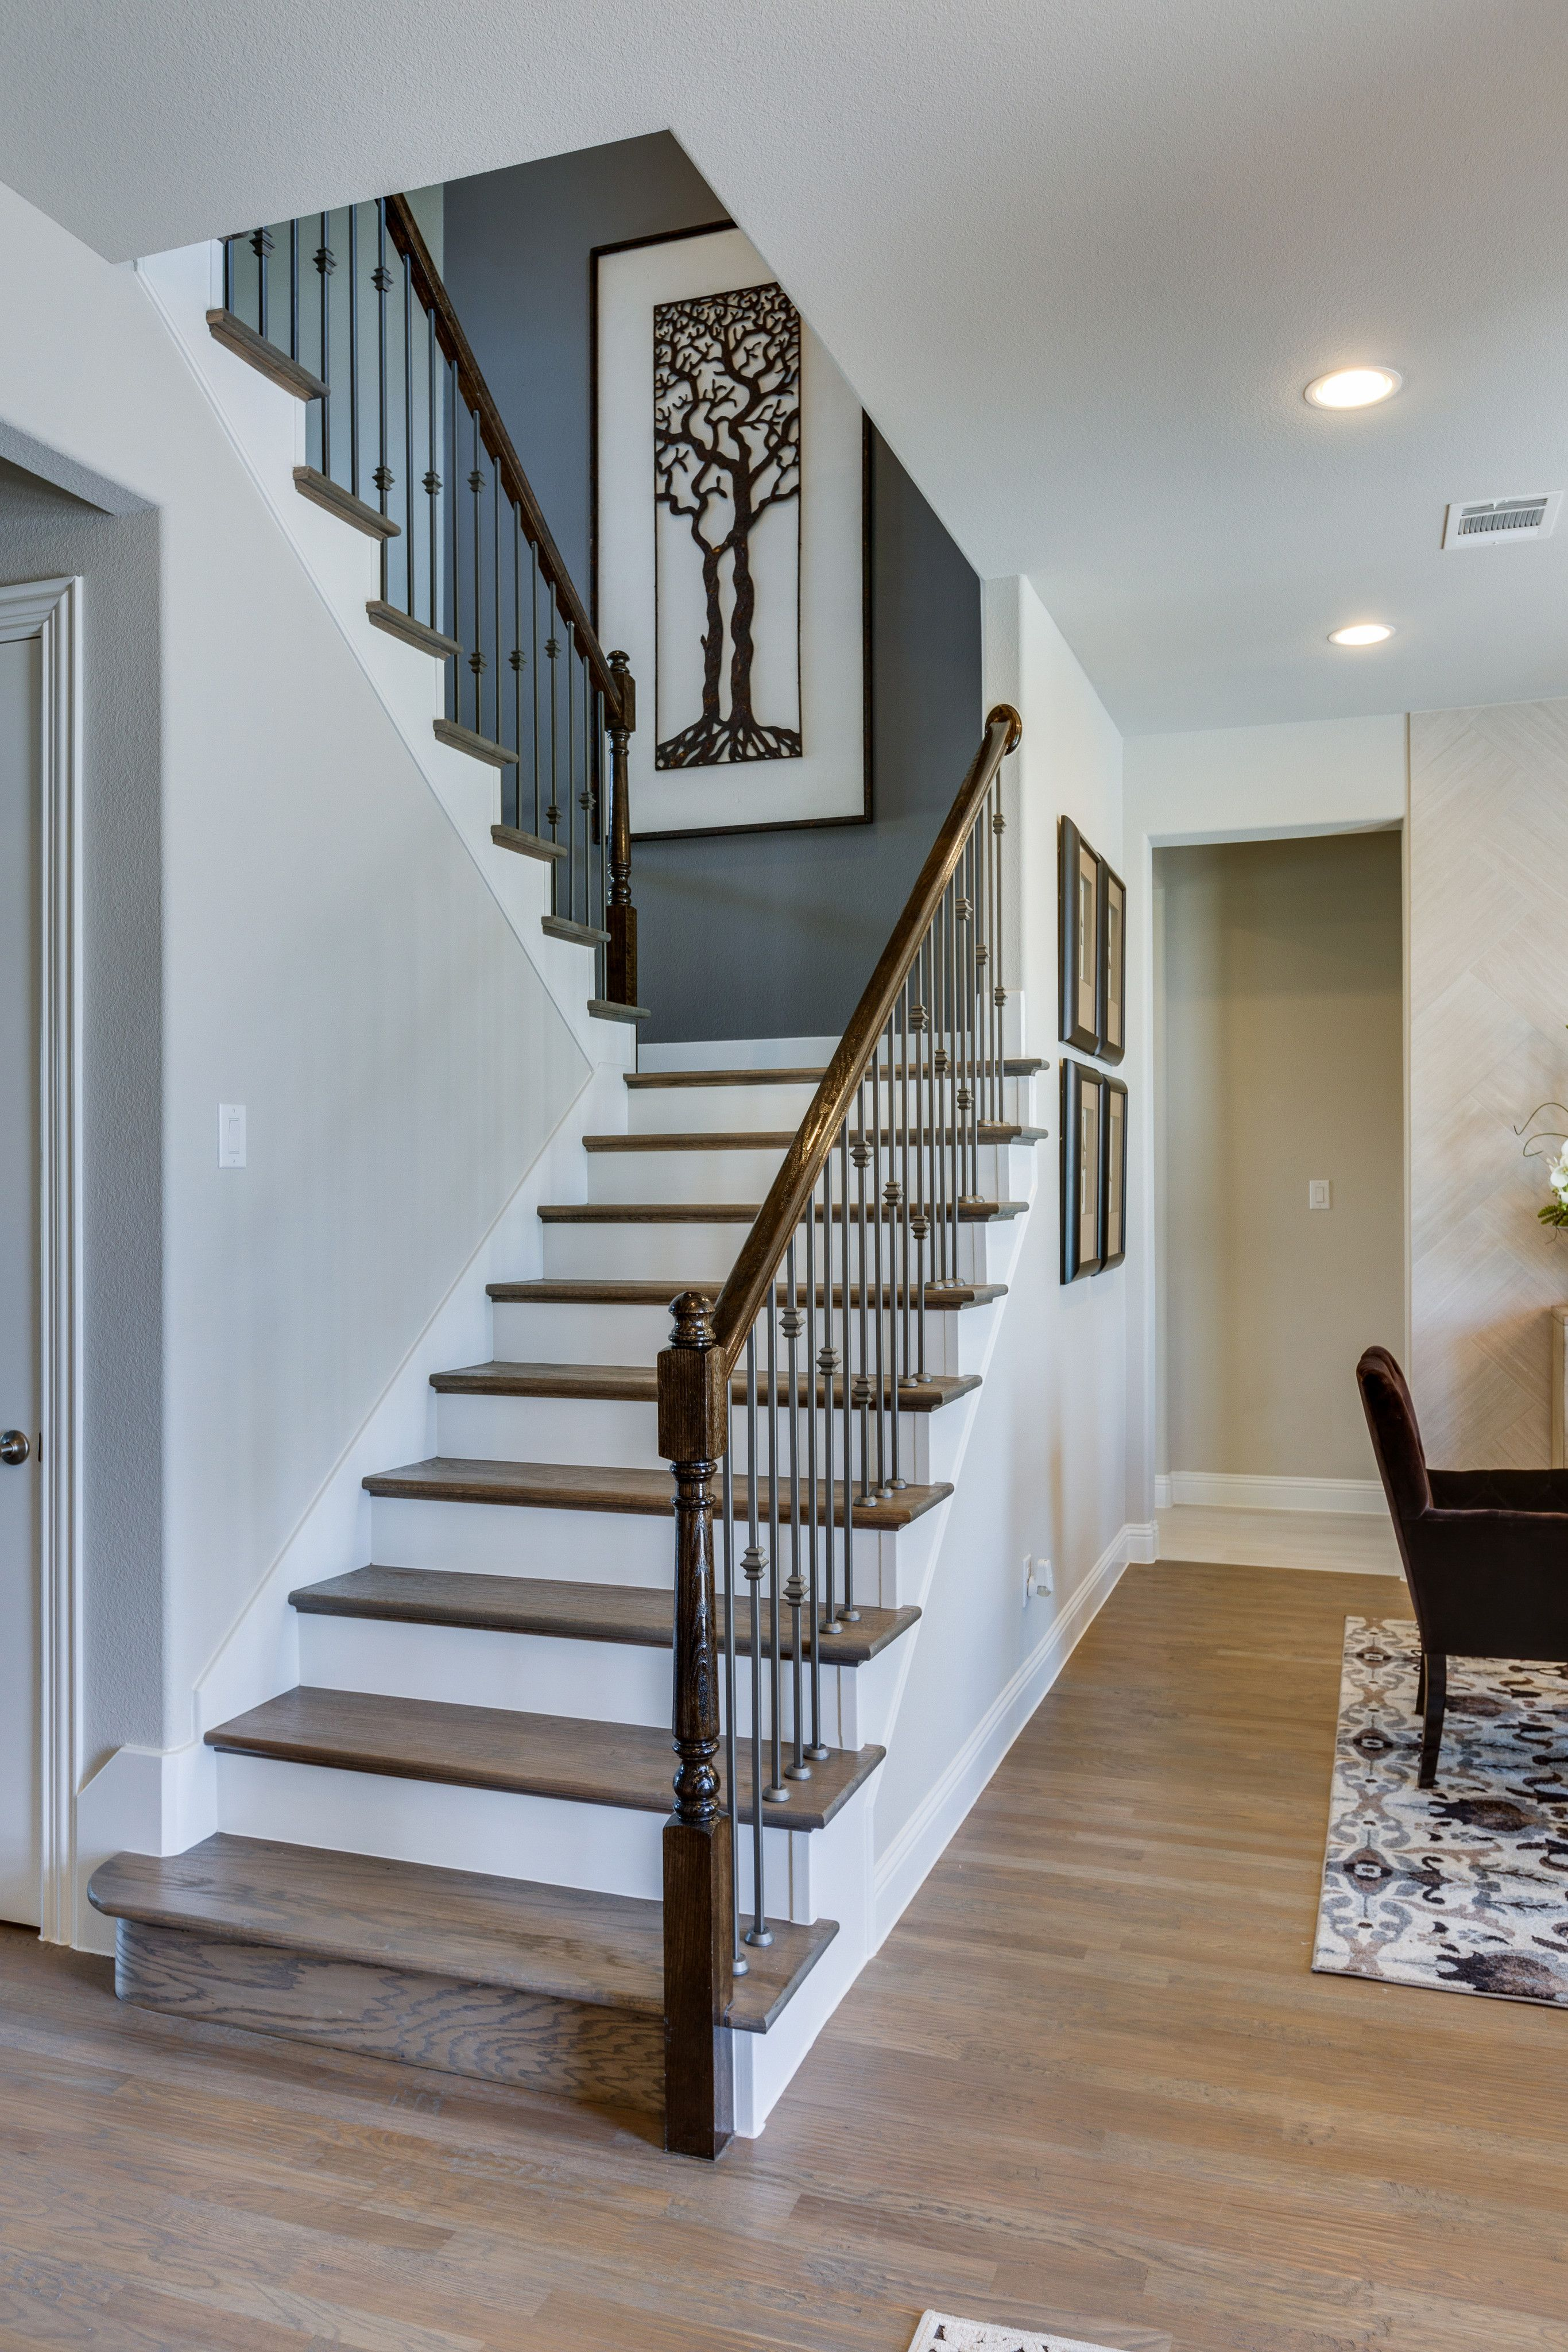 Canned Ceiling Lights Basement Stairs: 10 Most Popular Light For Stairways Ideas, Let's Take A